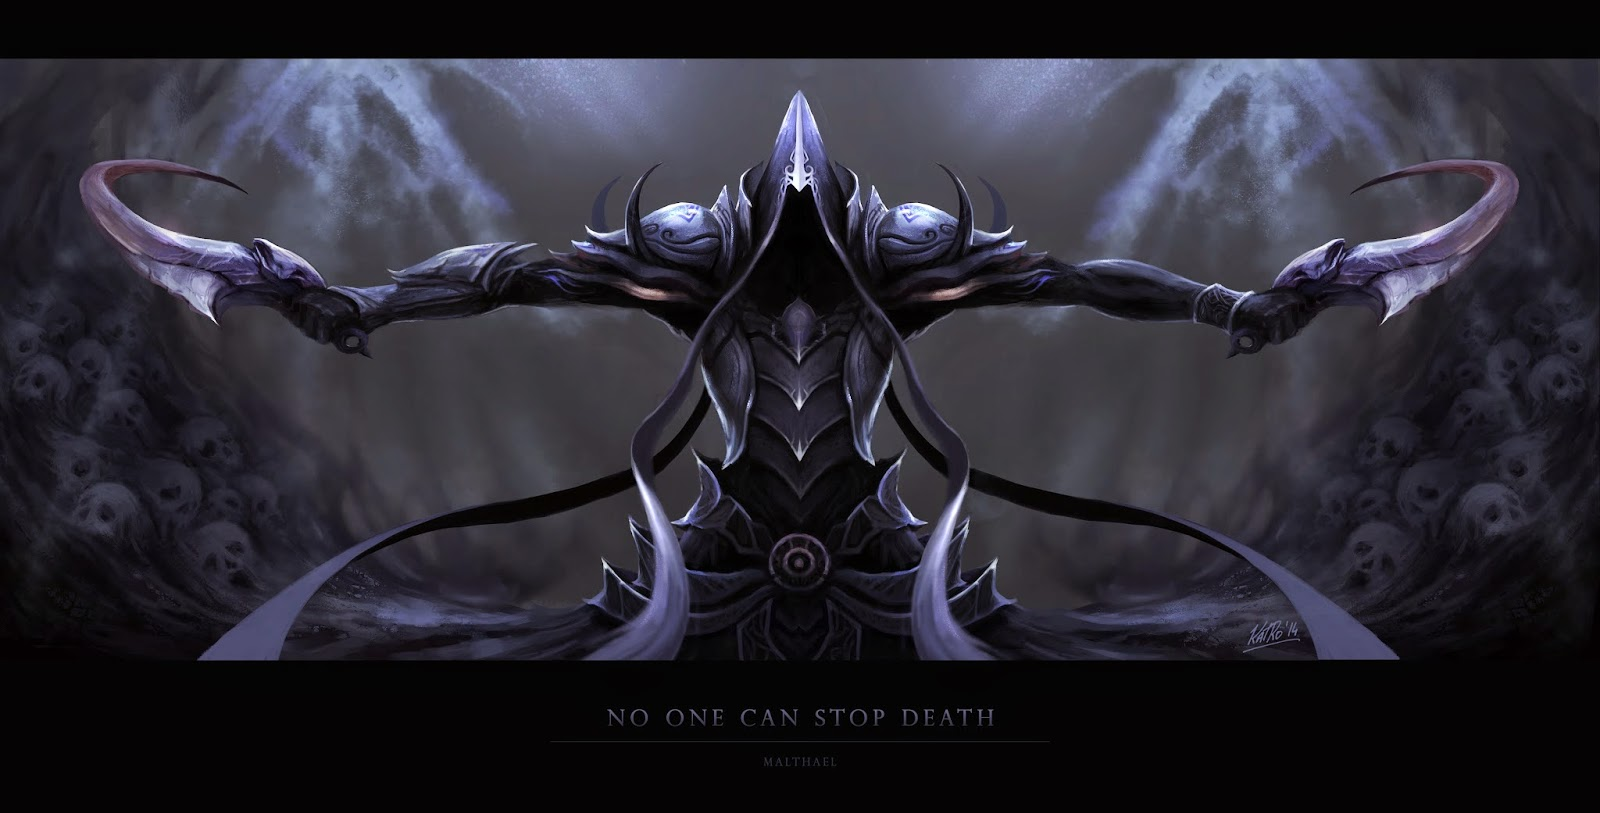 no one can stop death